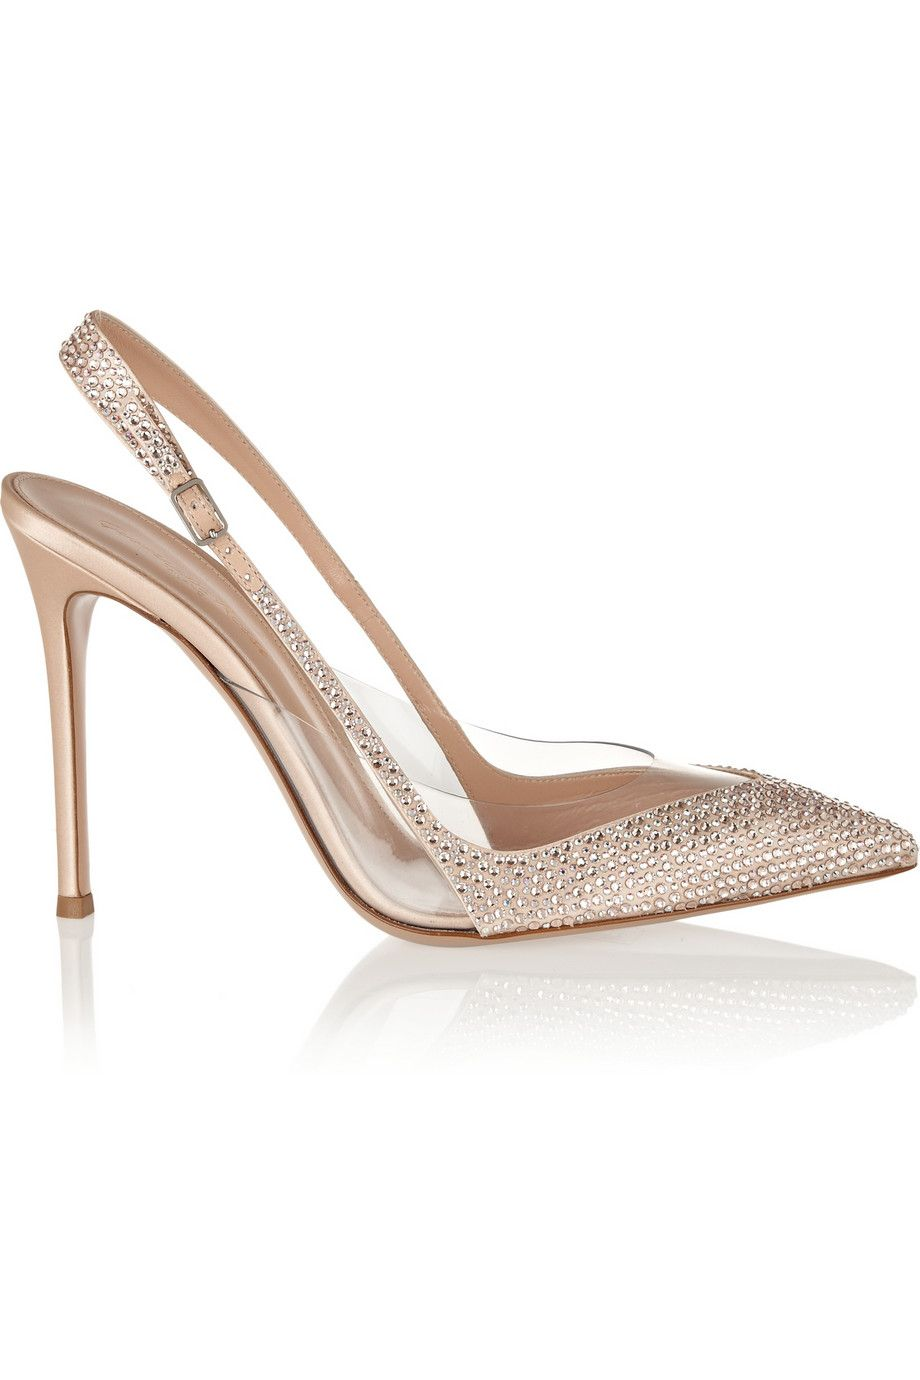 Beige Embellished Satin And Pvc Pumps Gianvito Rossi Heels Beige Shoes Slingback